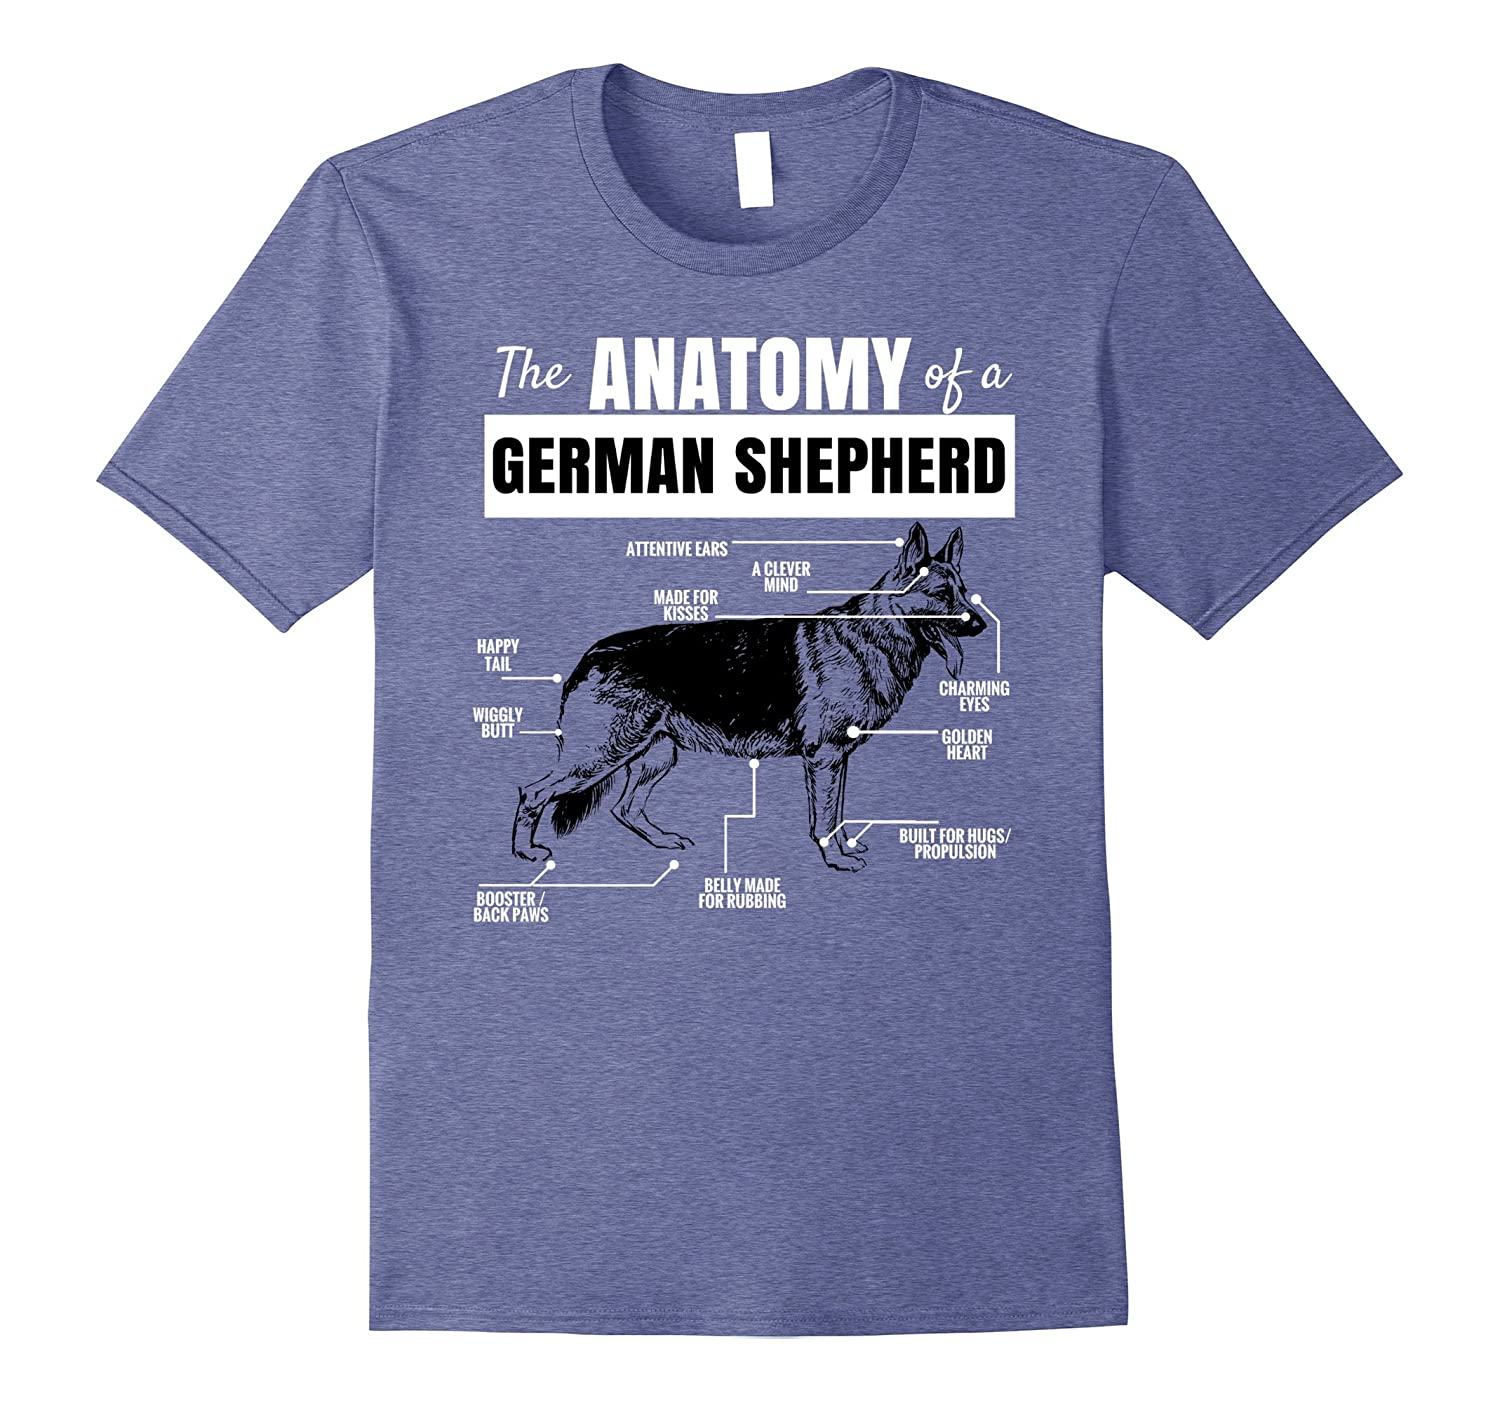 Anatomy of a German Shepherd T-Shirt Funny Dog Shirt-ANZ - Anztshirt